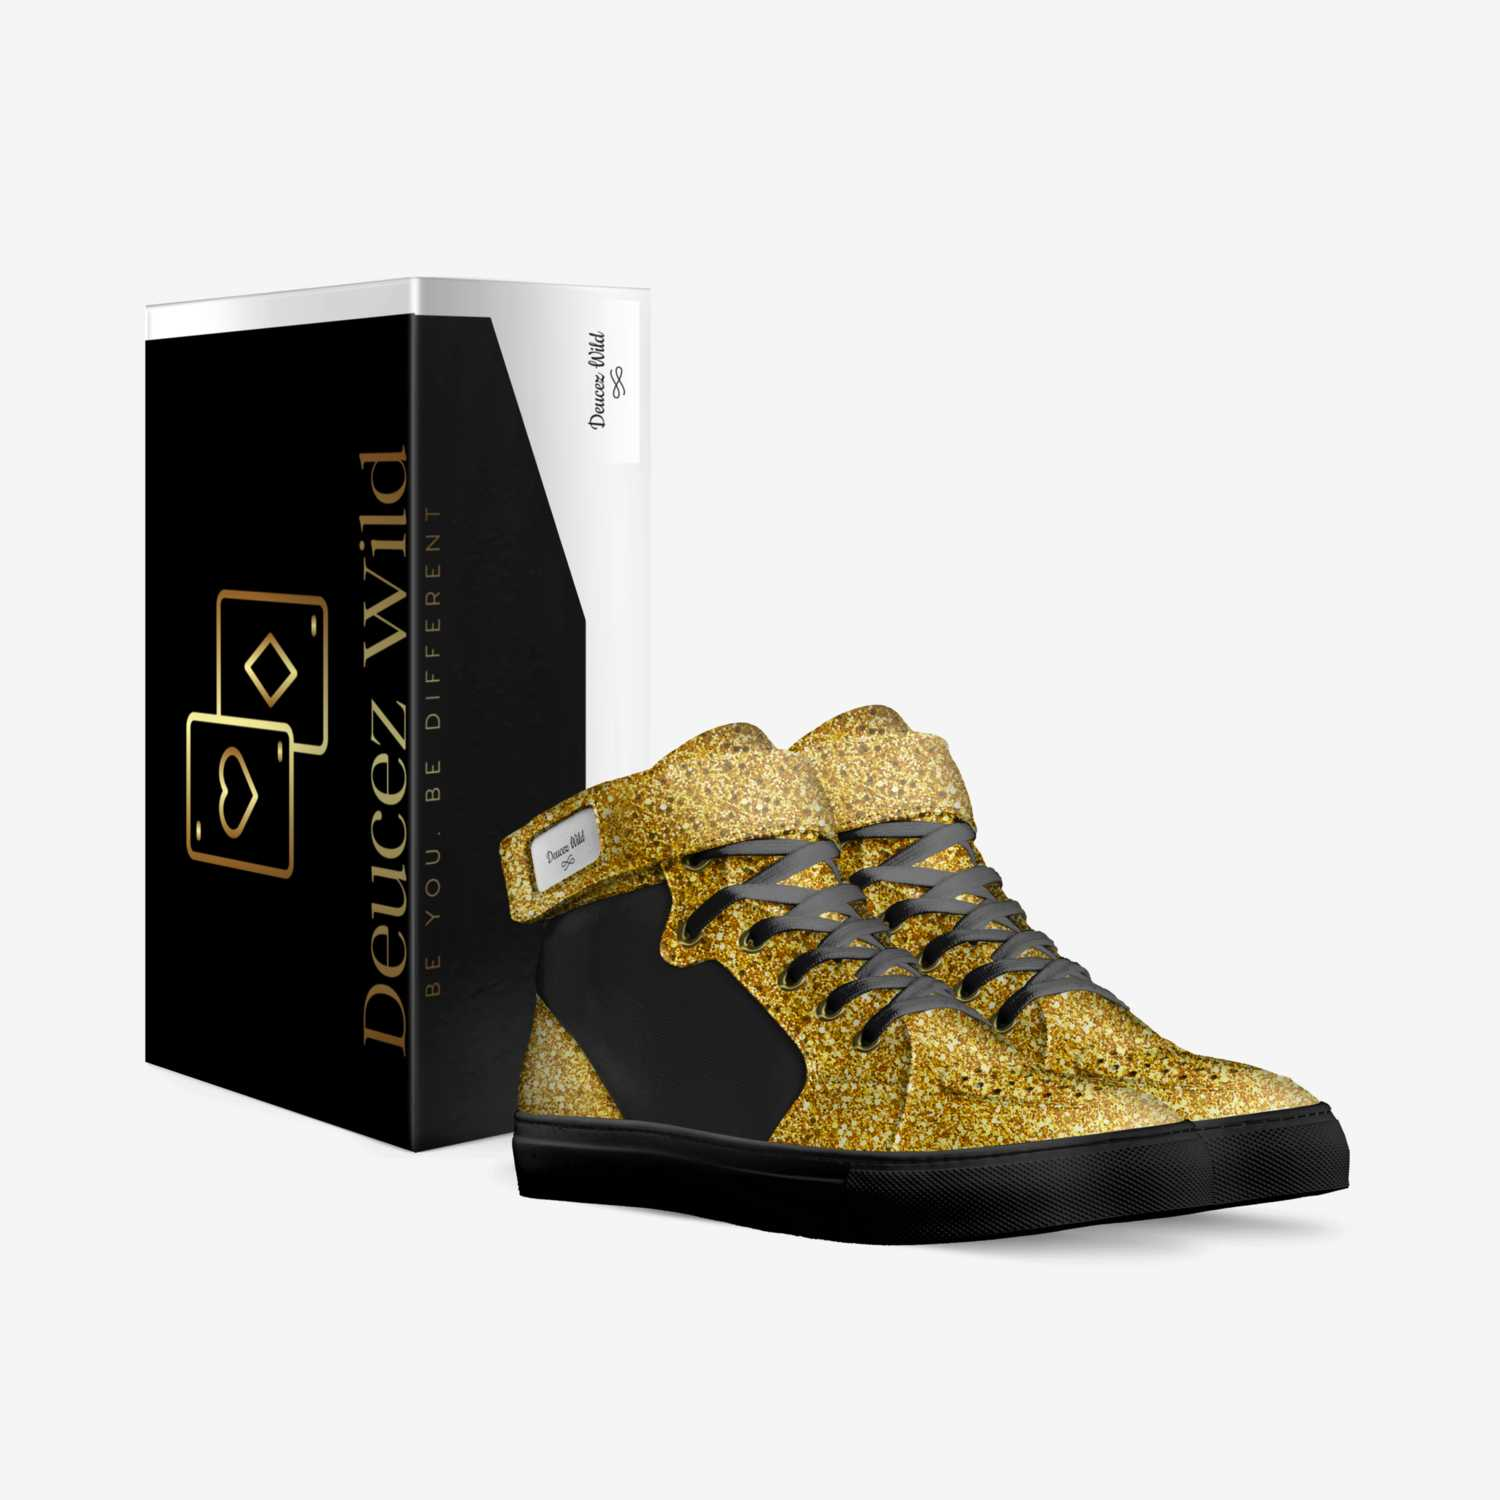 Deucez Wild custom made in Italy shoes by Kenneth Turner Jr | Box view